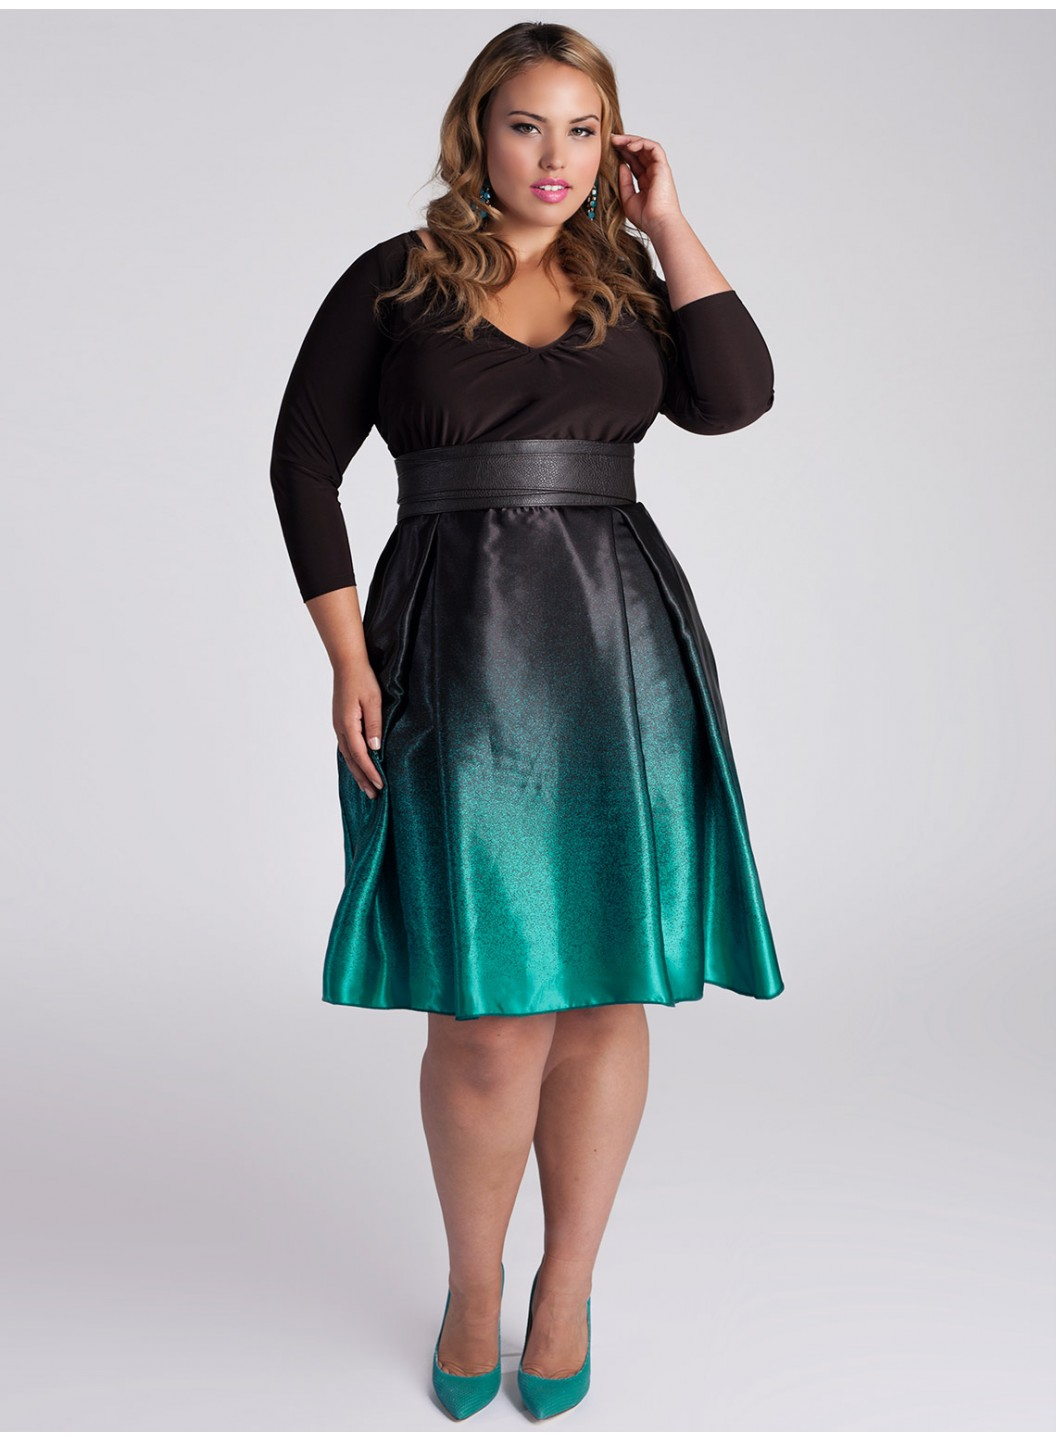 How to Dress for Plus Size